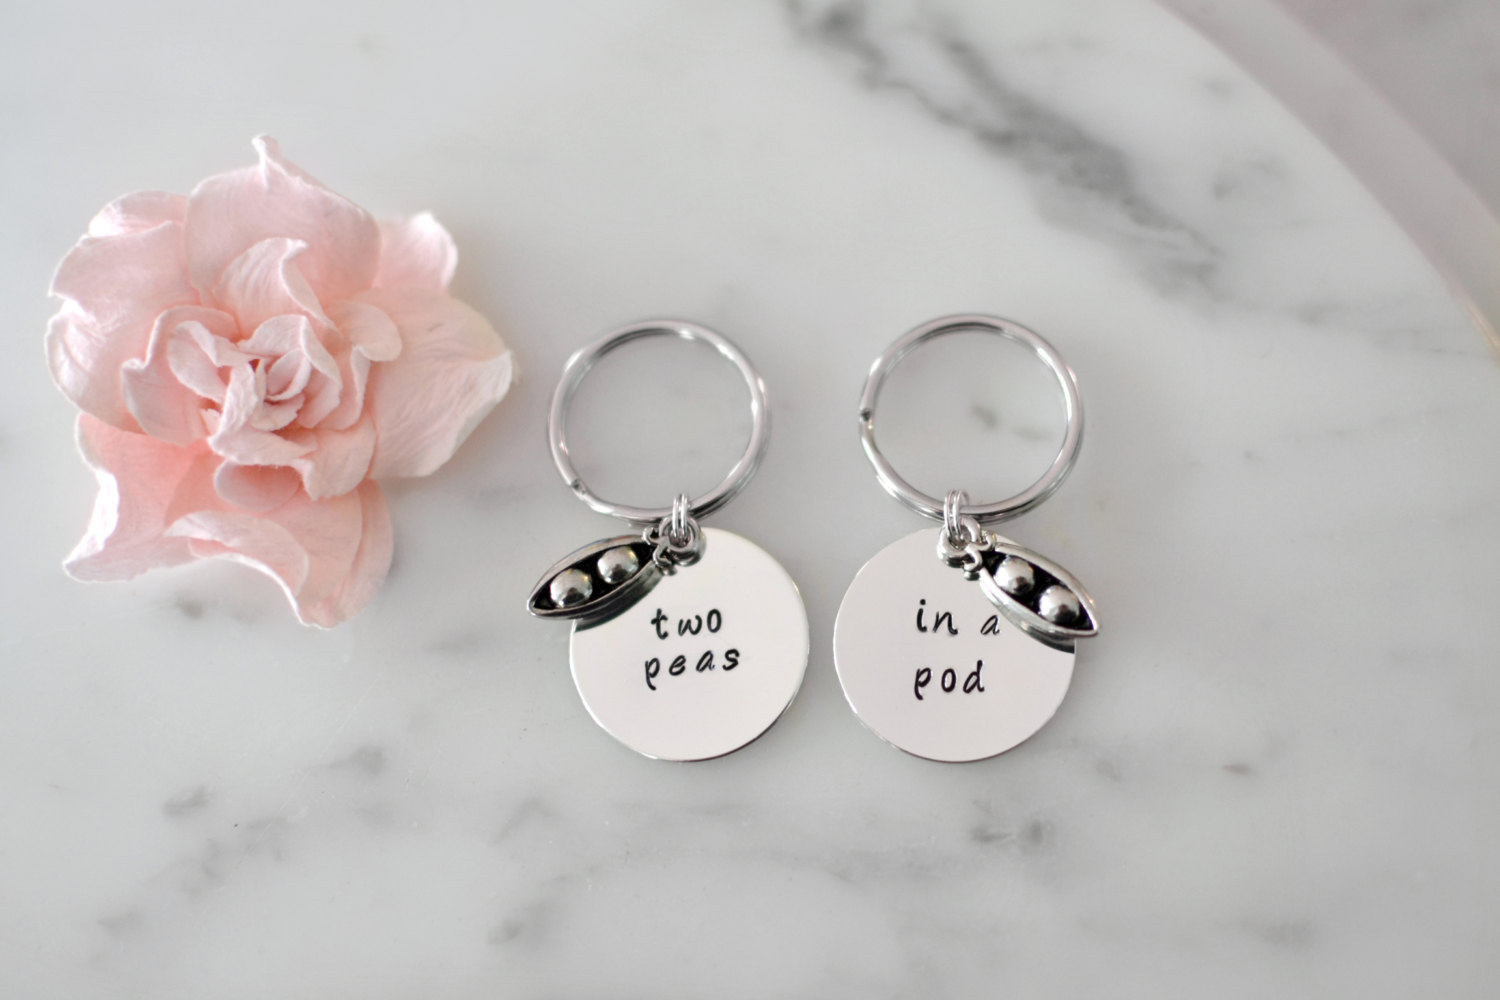 RX 1708 Gifts For Twin Sisters Two Peas In A Pod Keychain Set